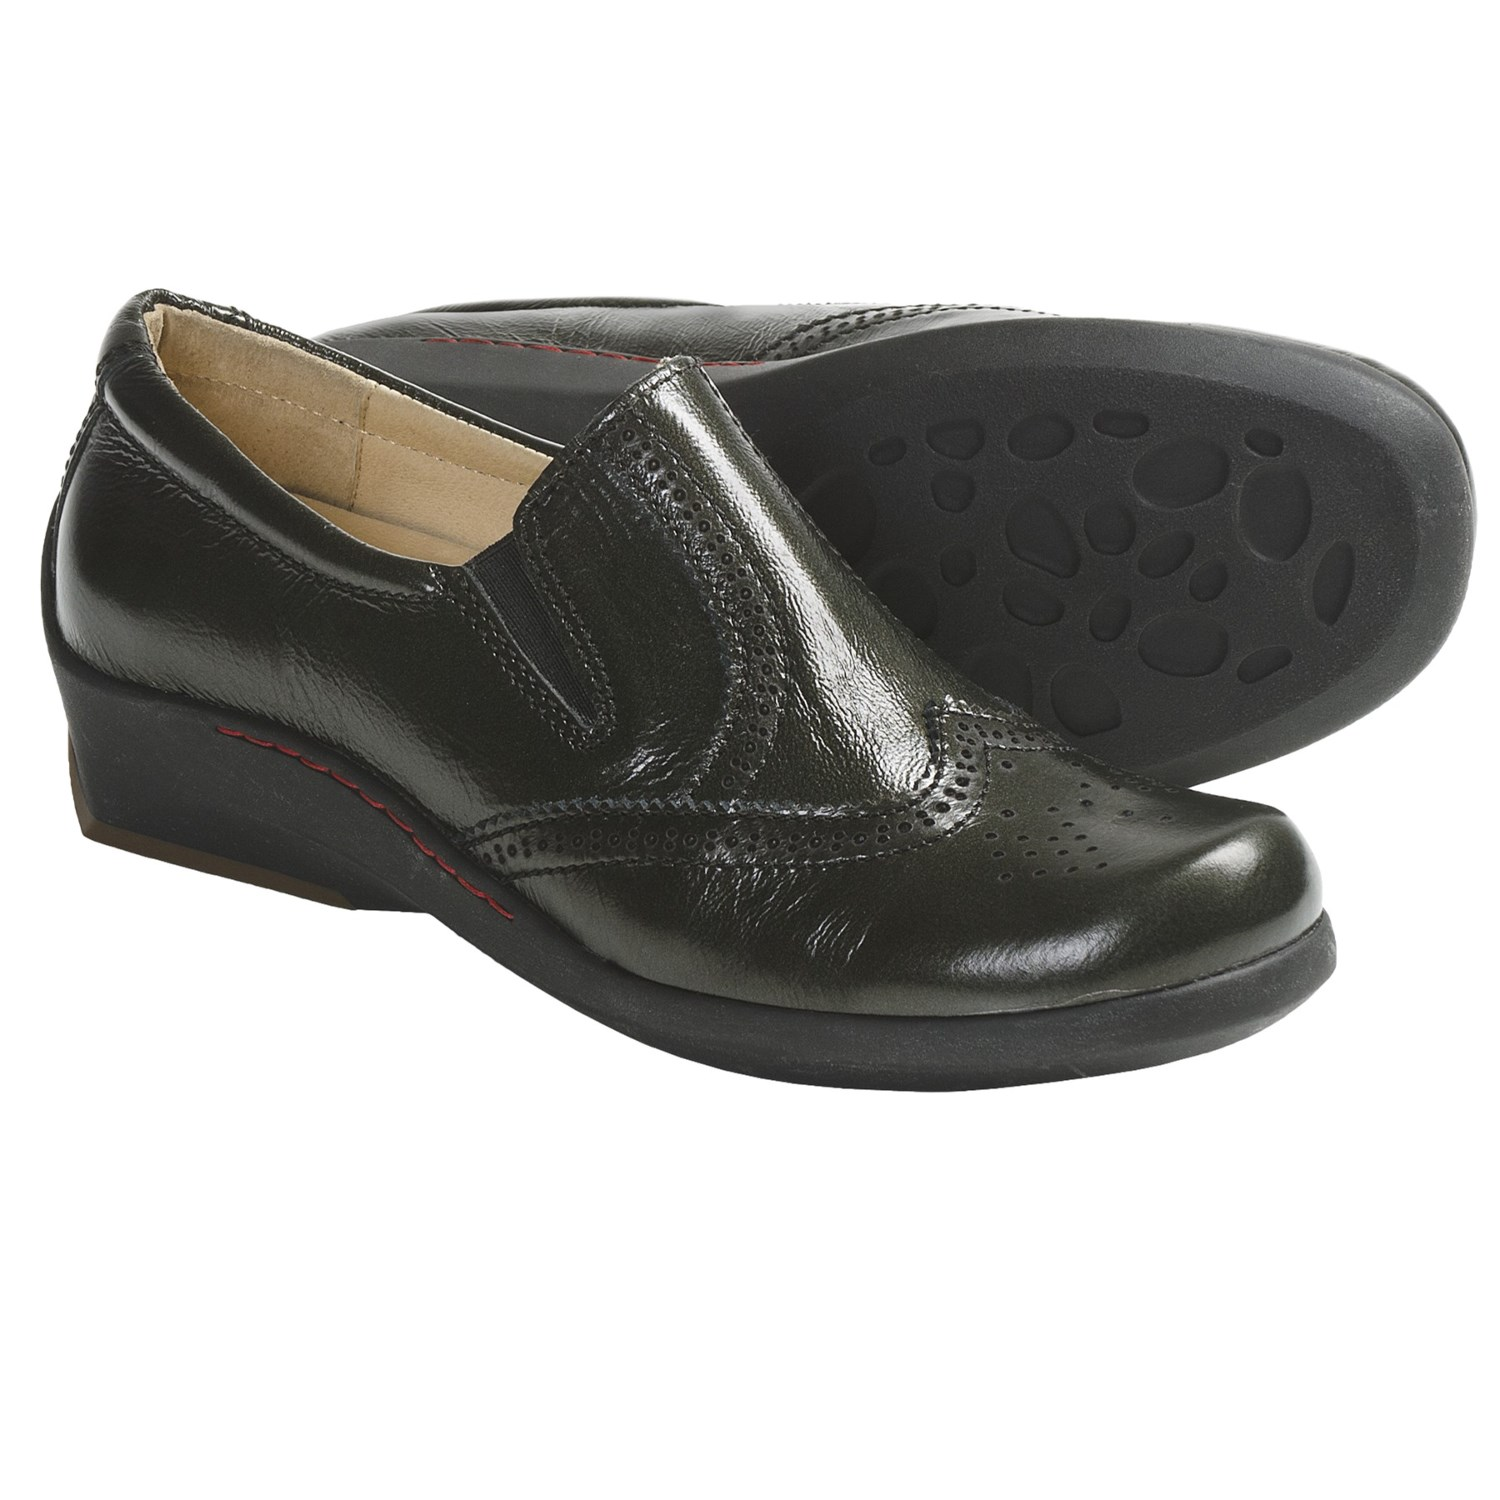 Wolky Berlin Shoes - Leather, Slip-Ons (For Women) in Asphalt Wrinkled